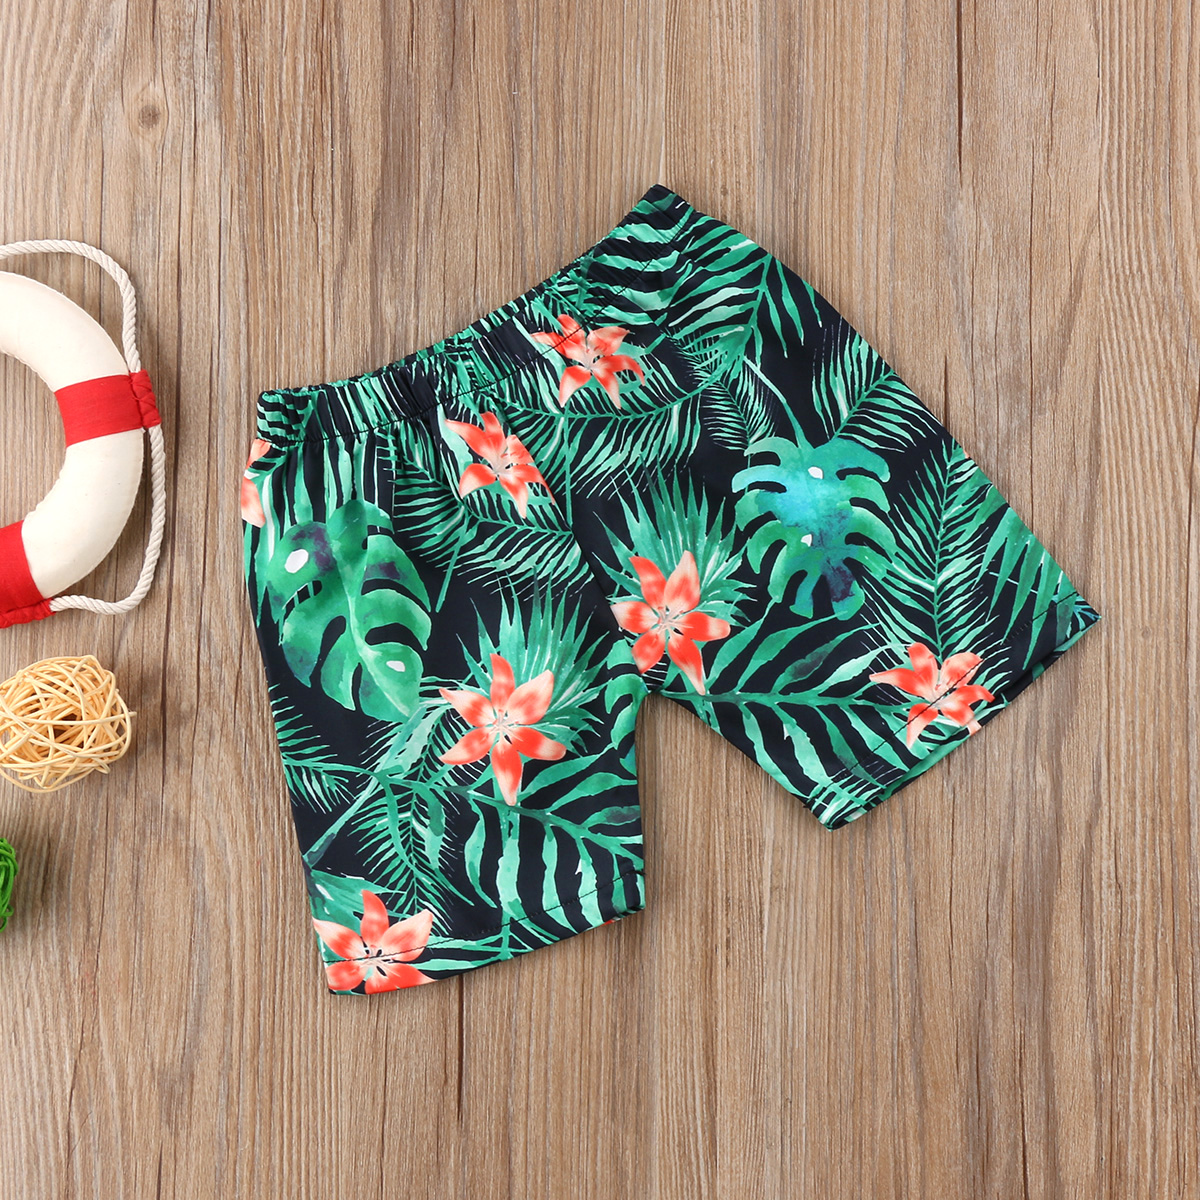 Board Shorts Trunks Swim Hawaiian Kids Boys Summer New Baby title=